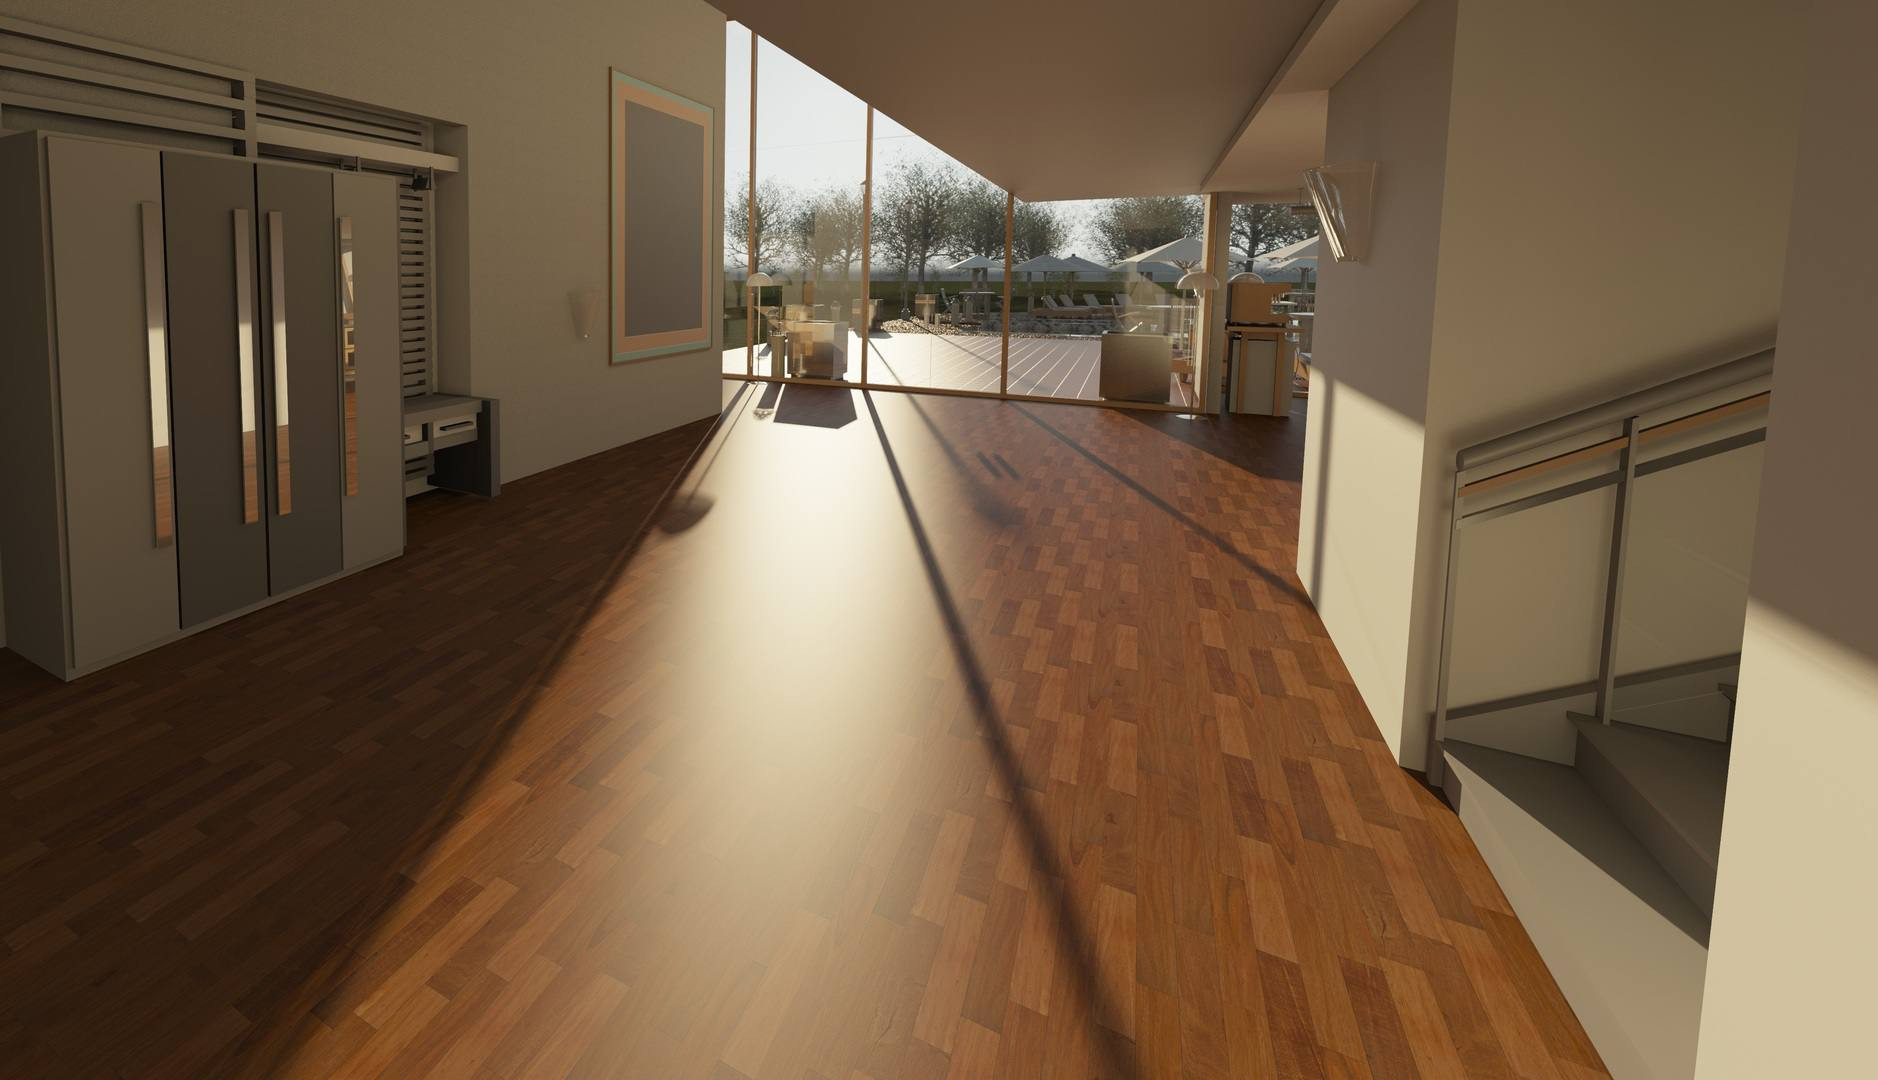 different colored hardwood floors same house of common flooring types currently used in renovation and building throughout architecture wood house floor interior window 917178 pxhere com 5ba27a2cc9e77c00503b27b9